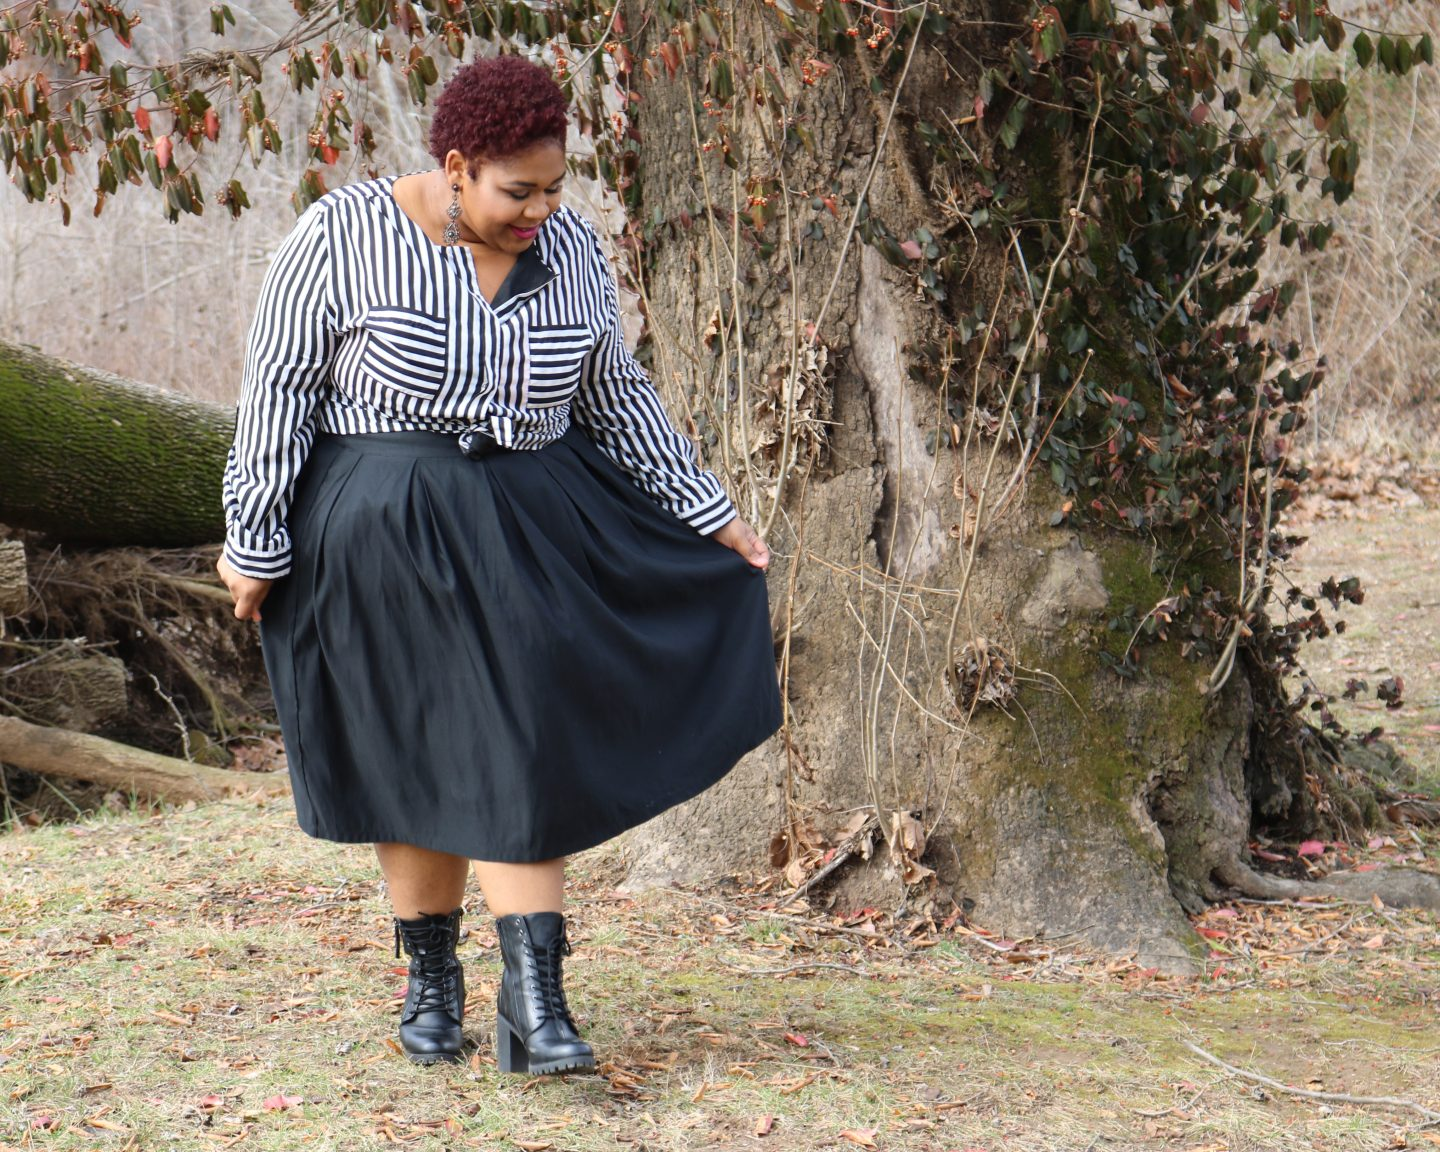 Black A-line skirt and strip shirt